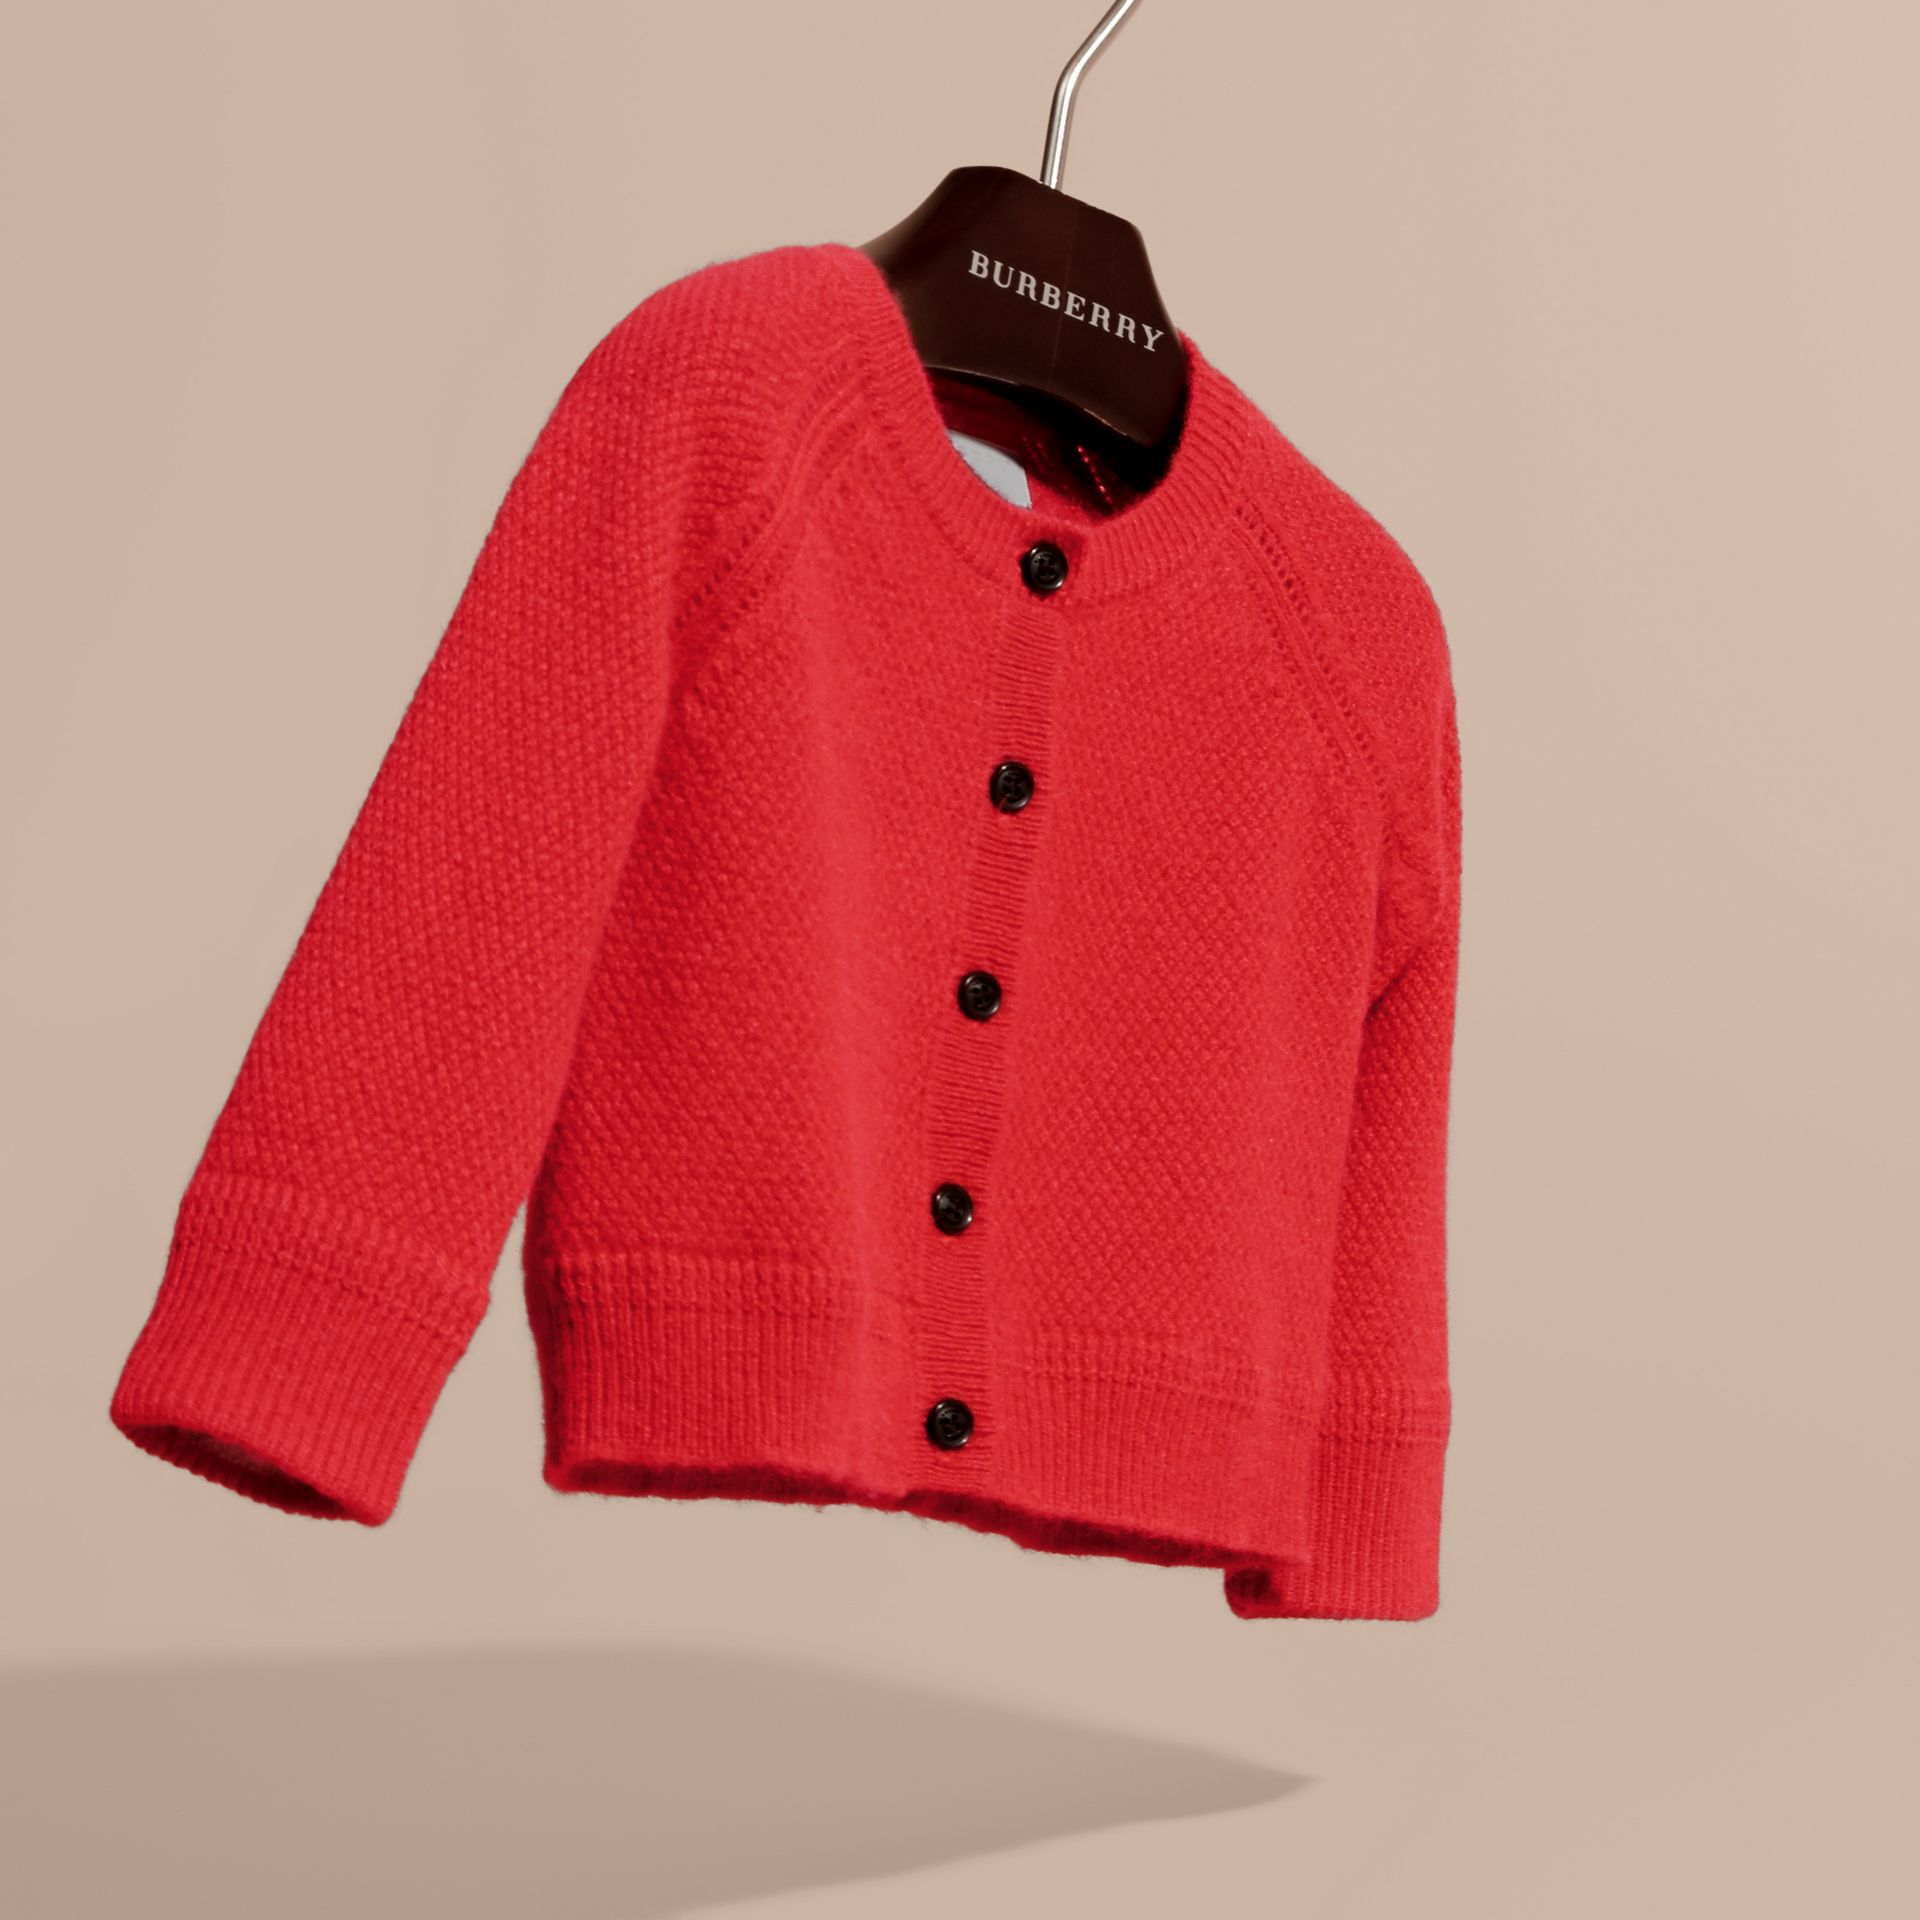 Textured Knit Cashmere Cardigan in Parade Red | Burberry - gallery image 3